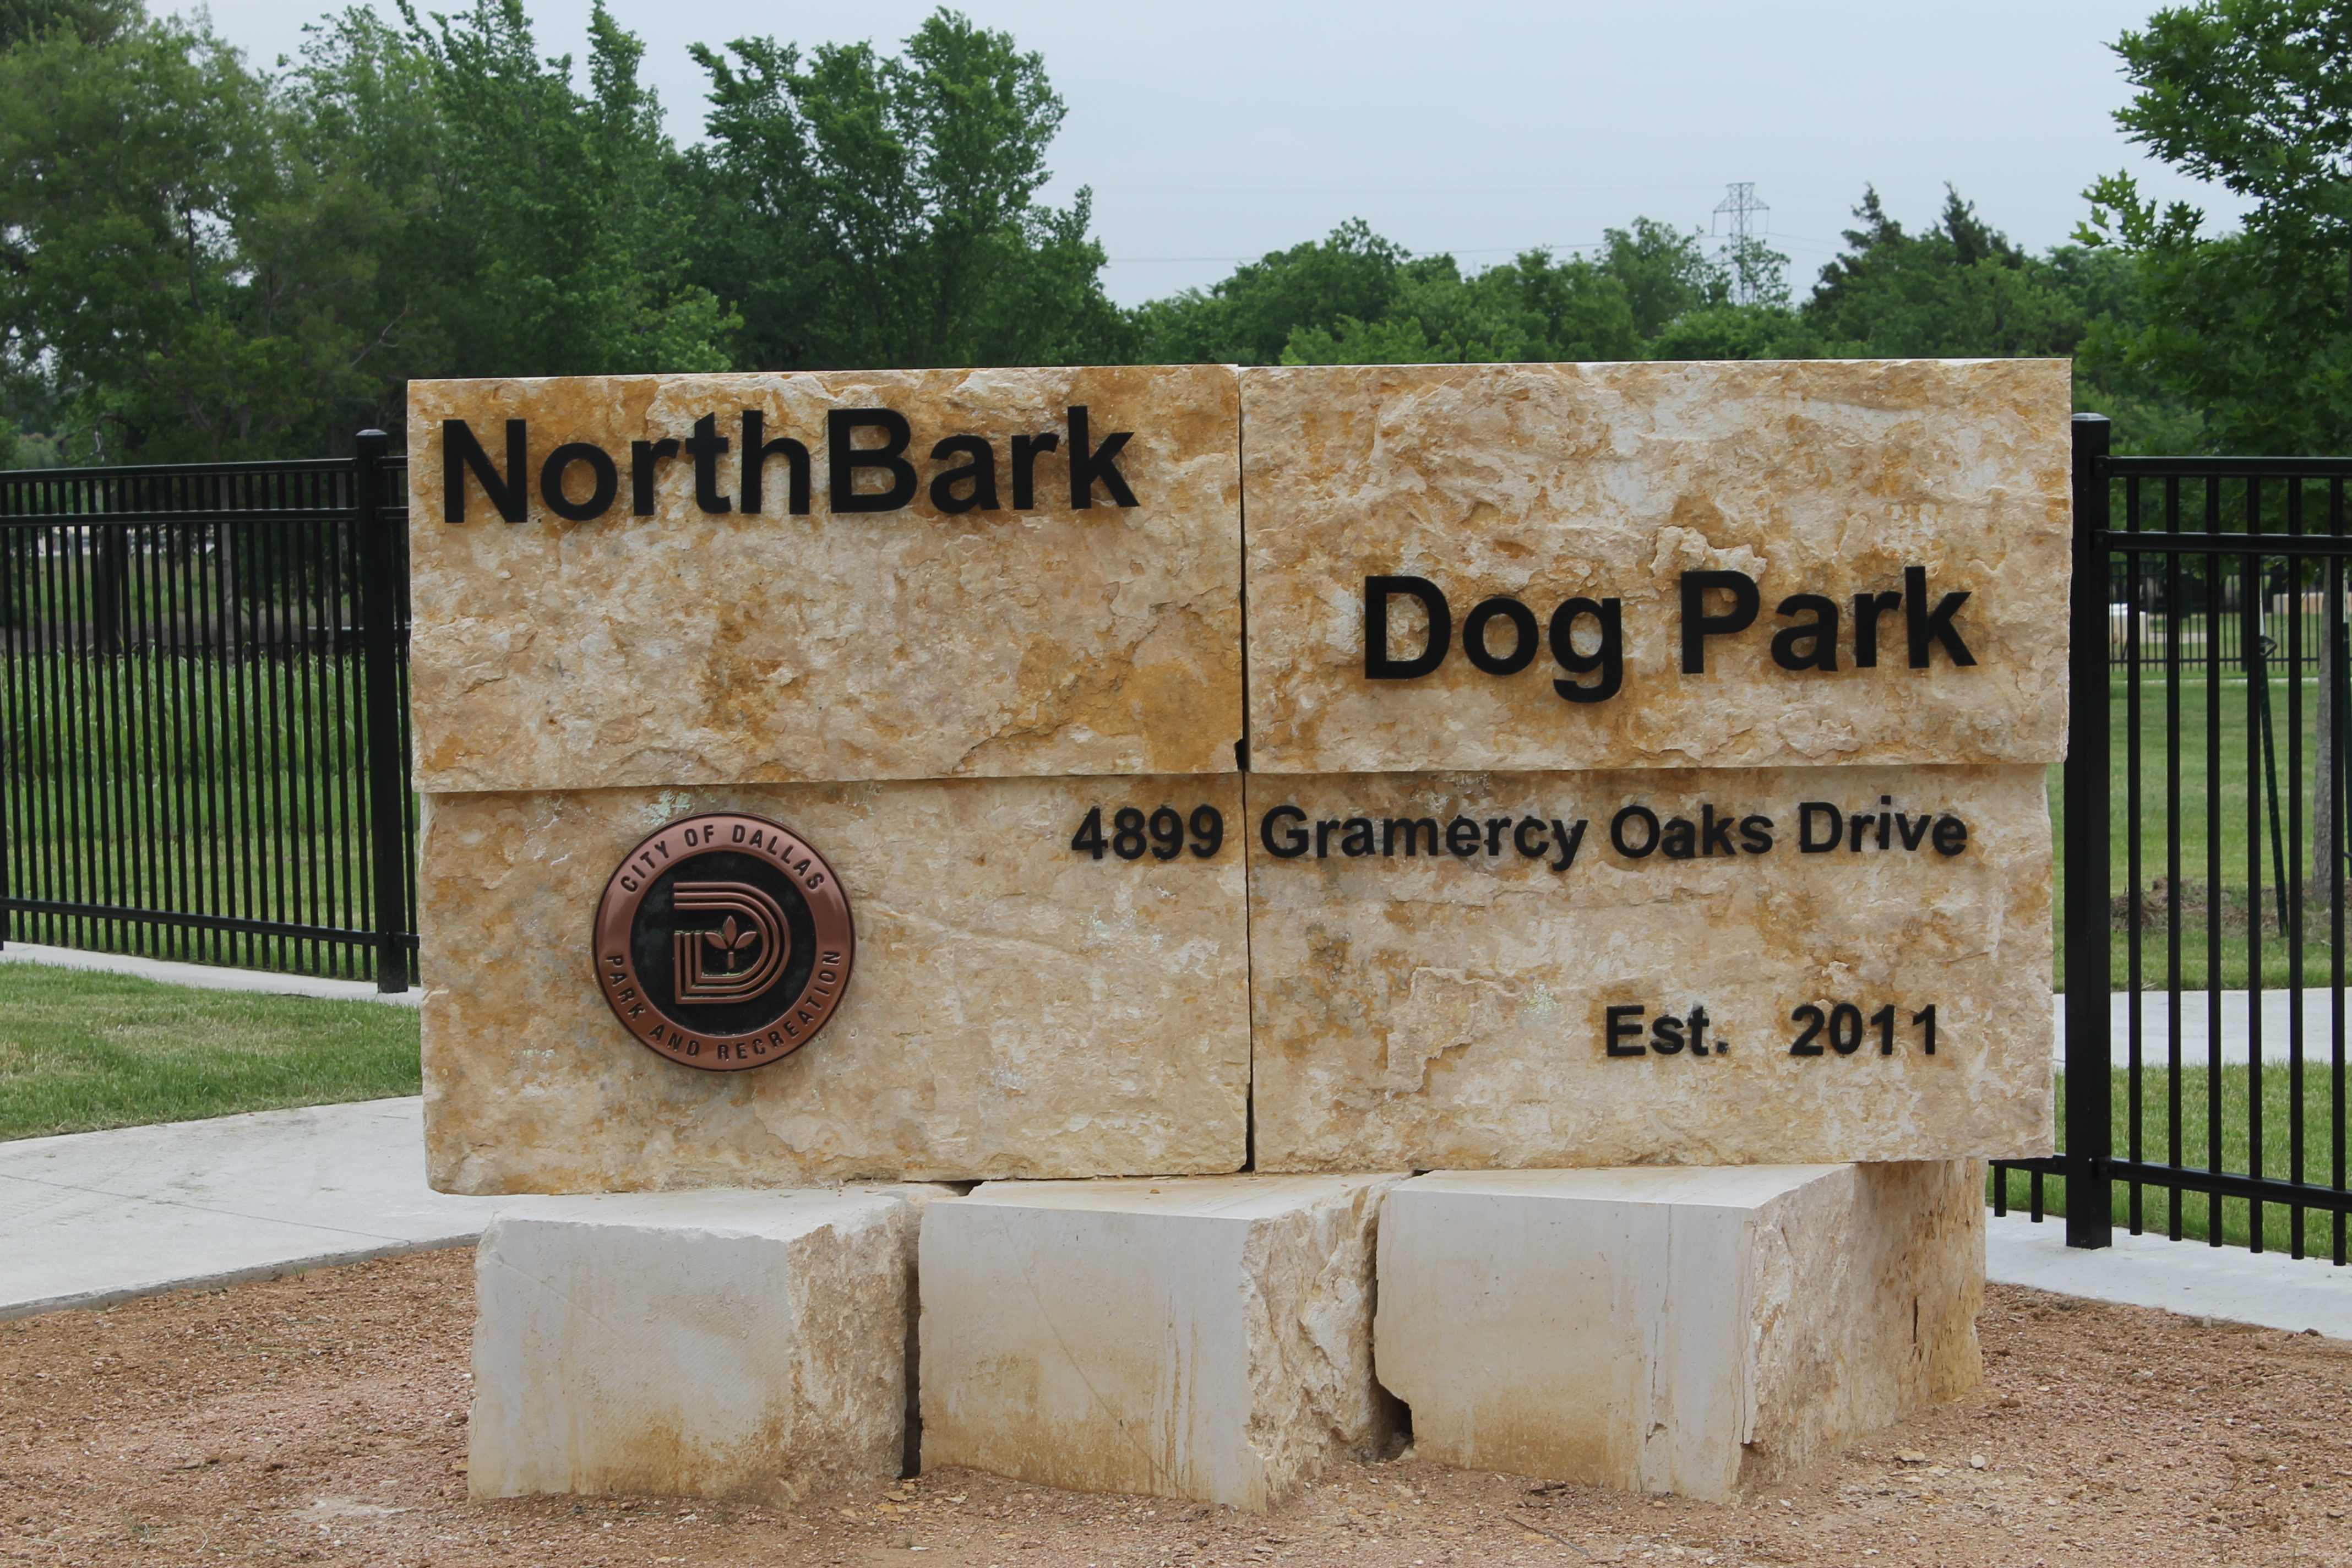 North Bark Dog Park